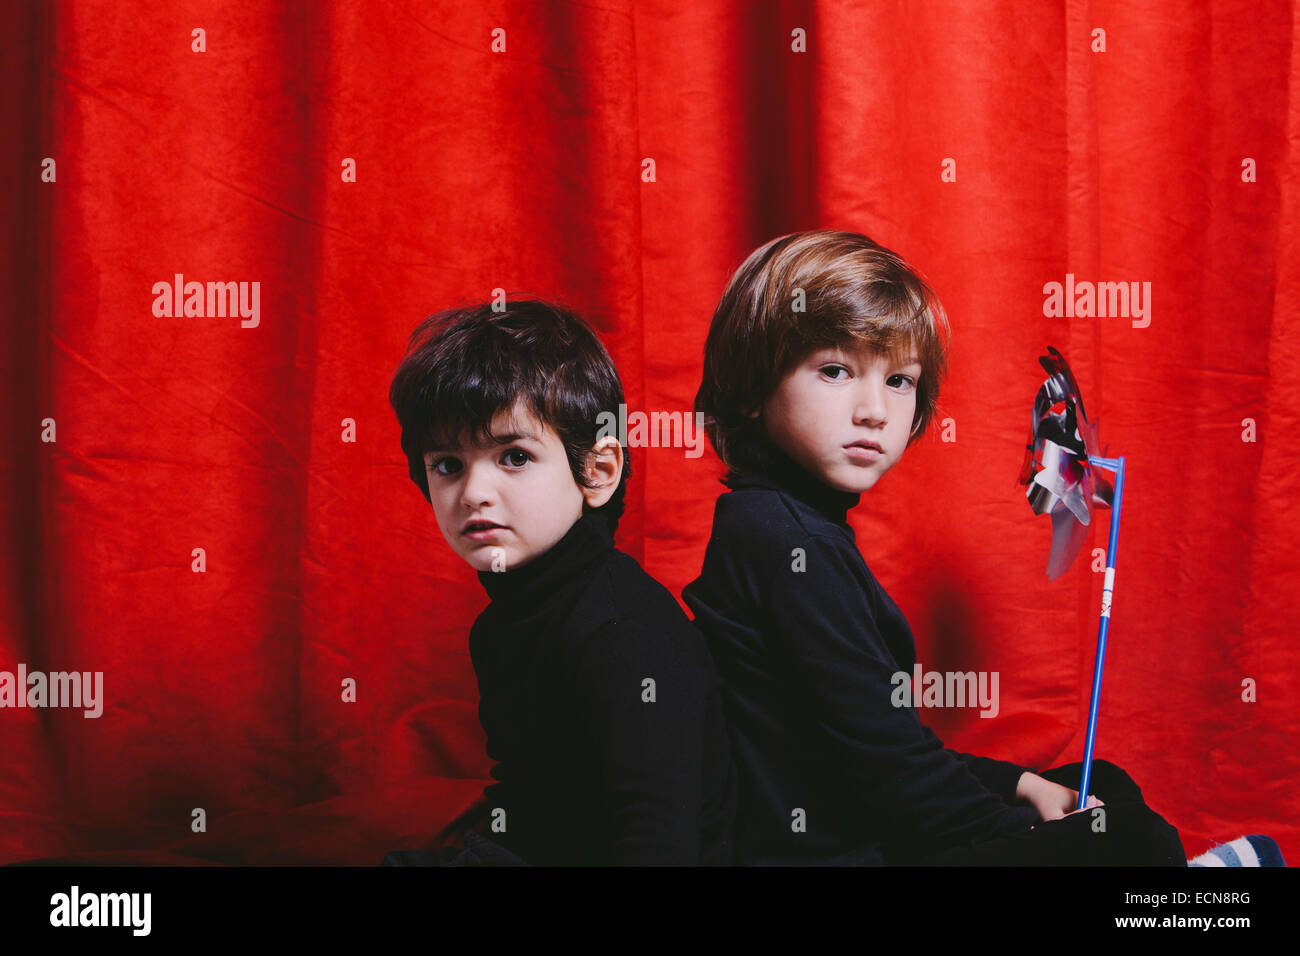 Studio portrait of two boys wearing black clothes - Stock Image